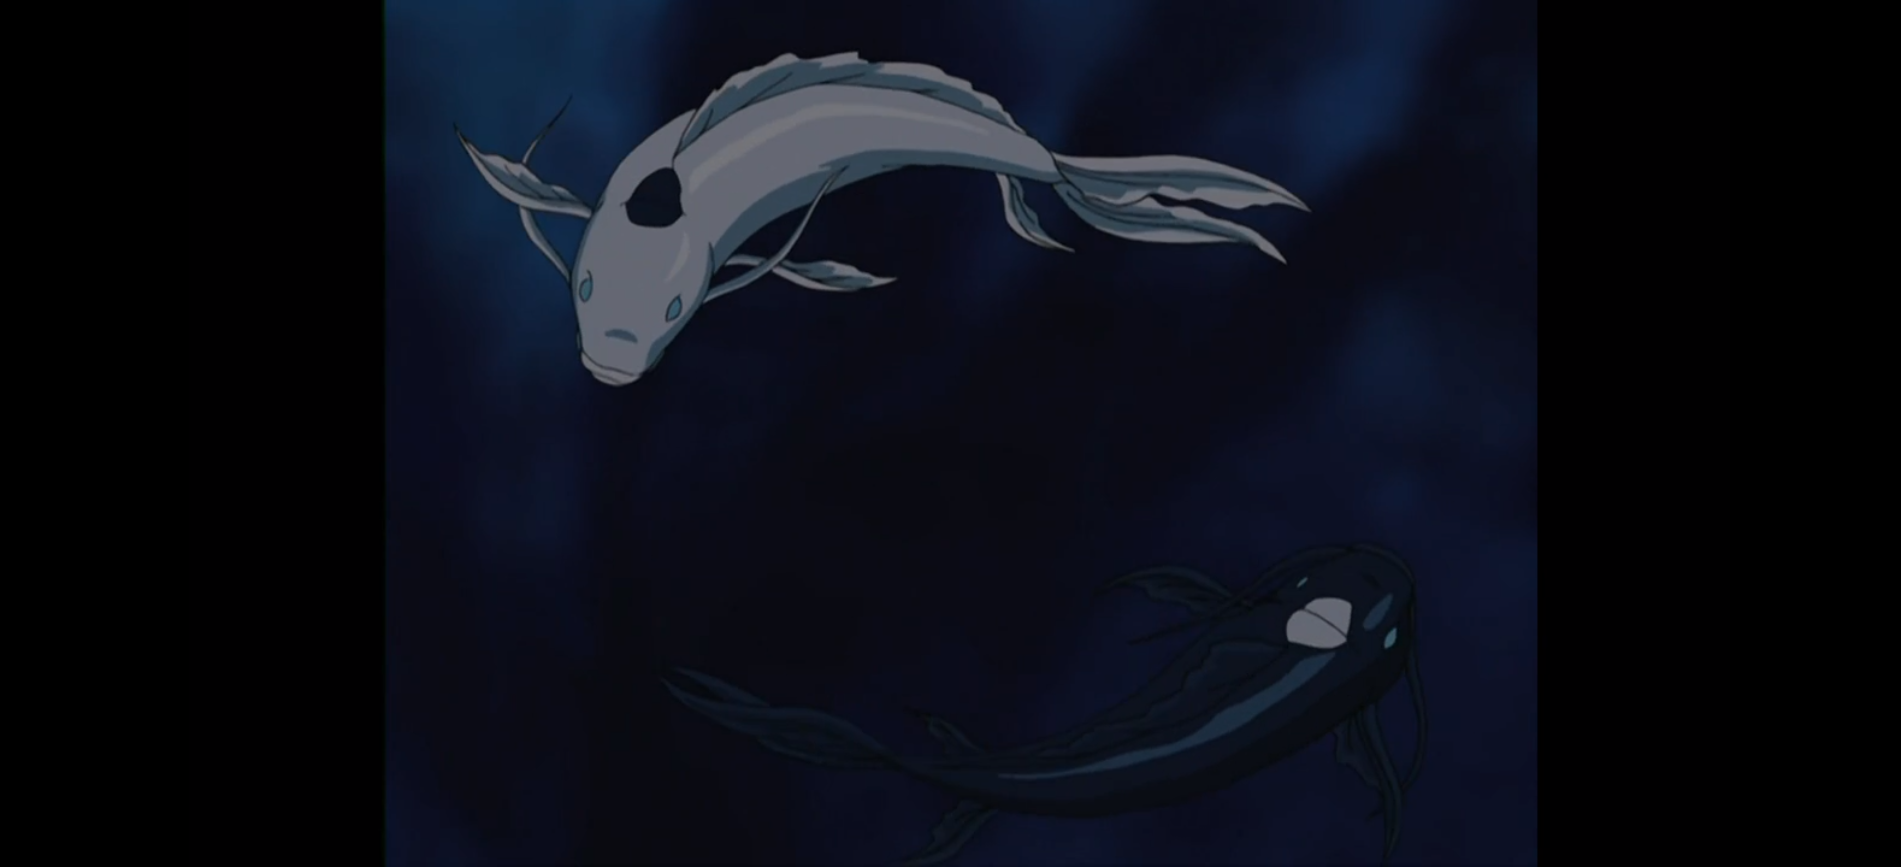 Two koi fish resembling and representing yin and yang, encircle each other in the season one finale of Avatar: The Last Airbender.